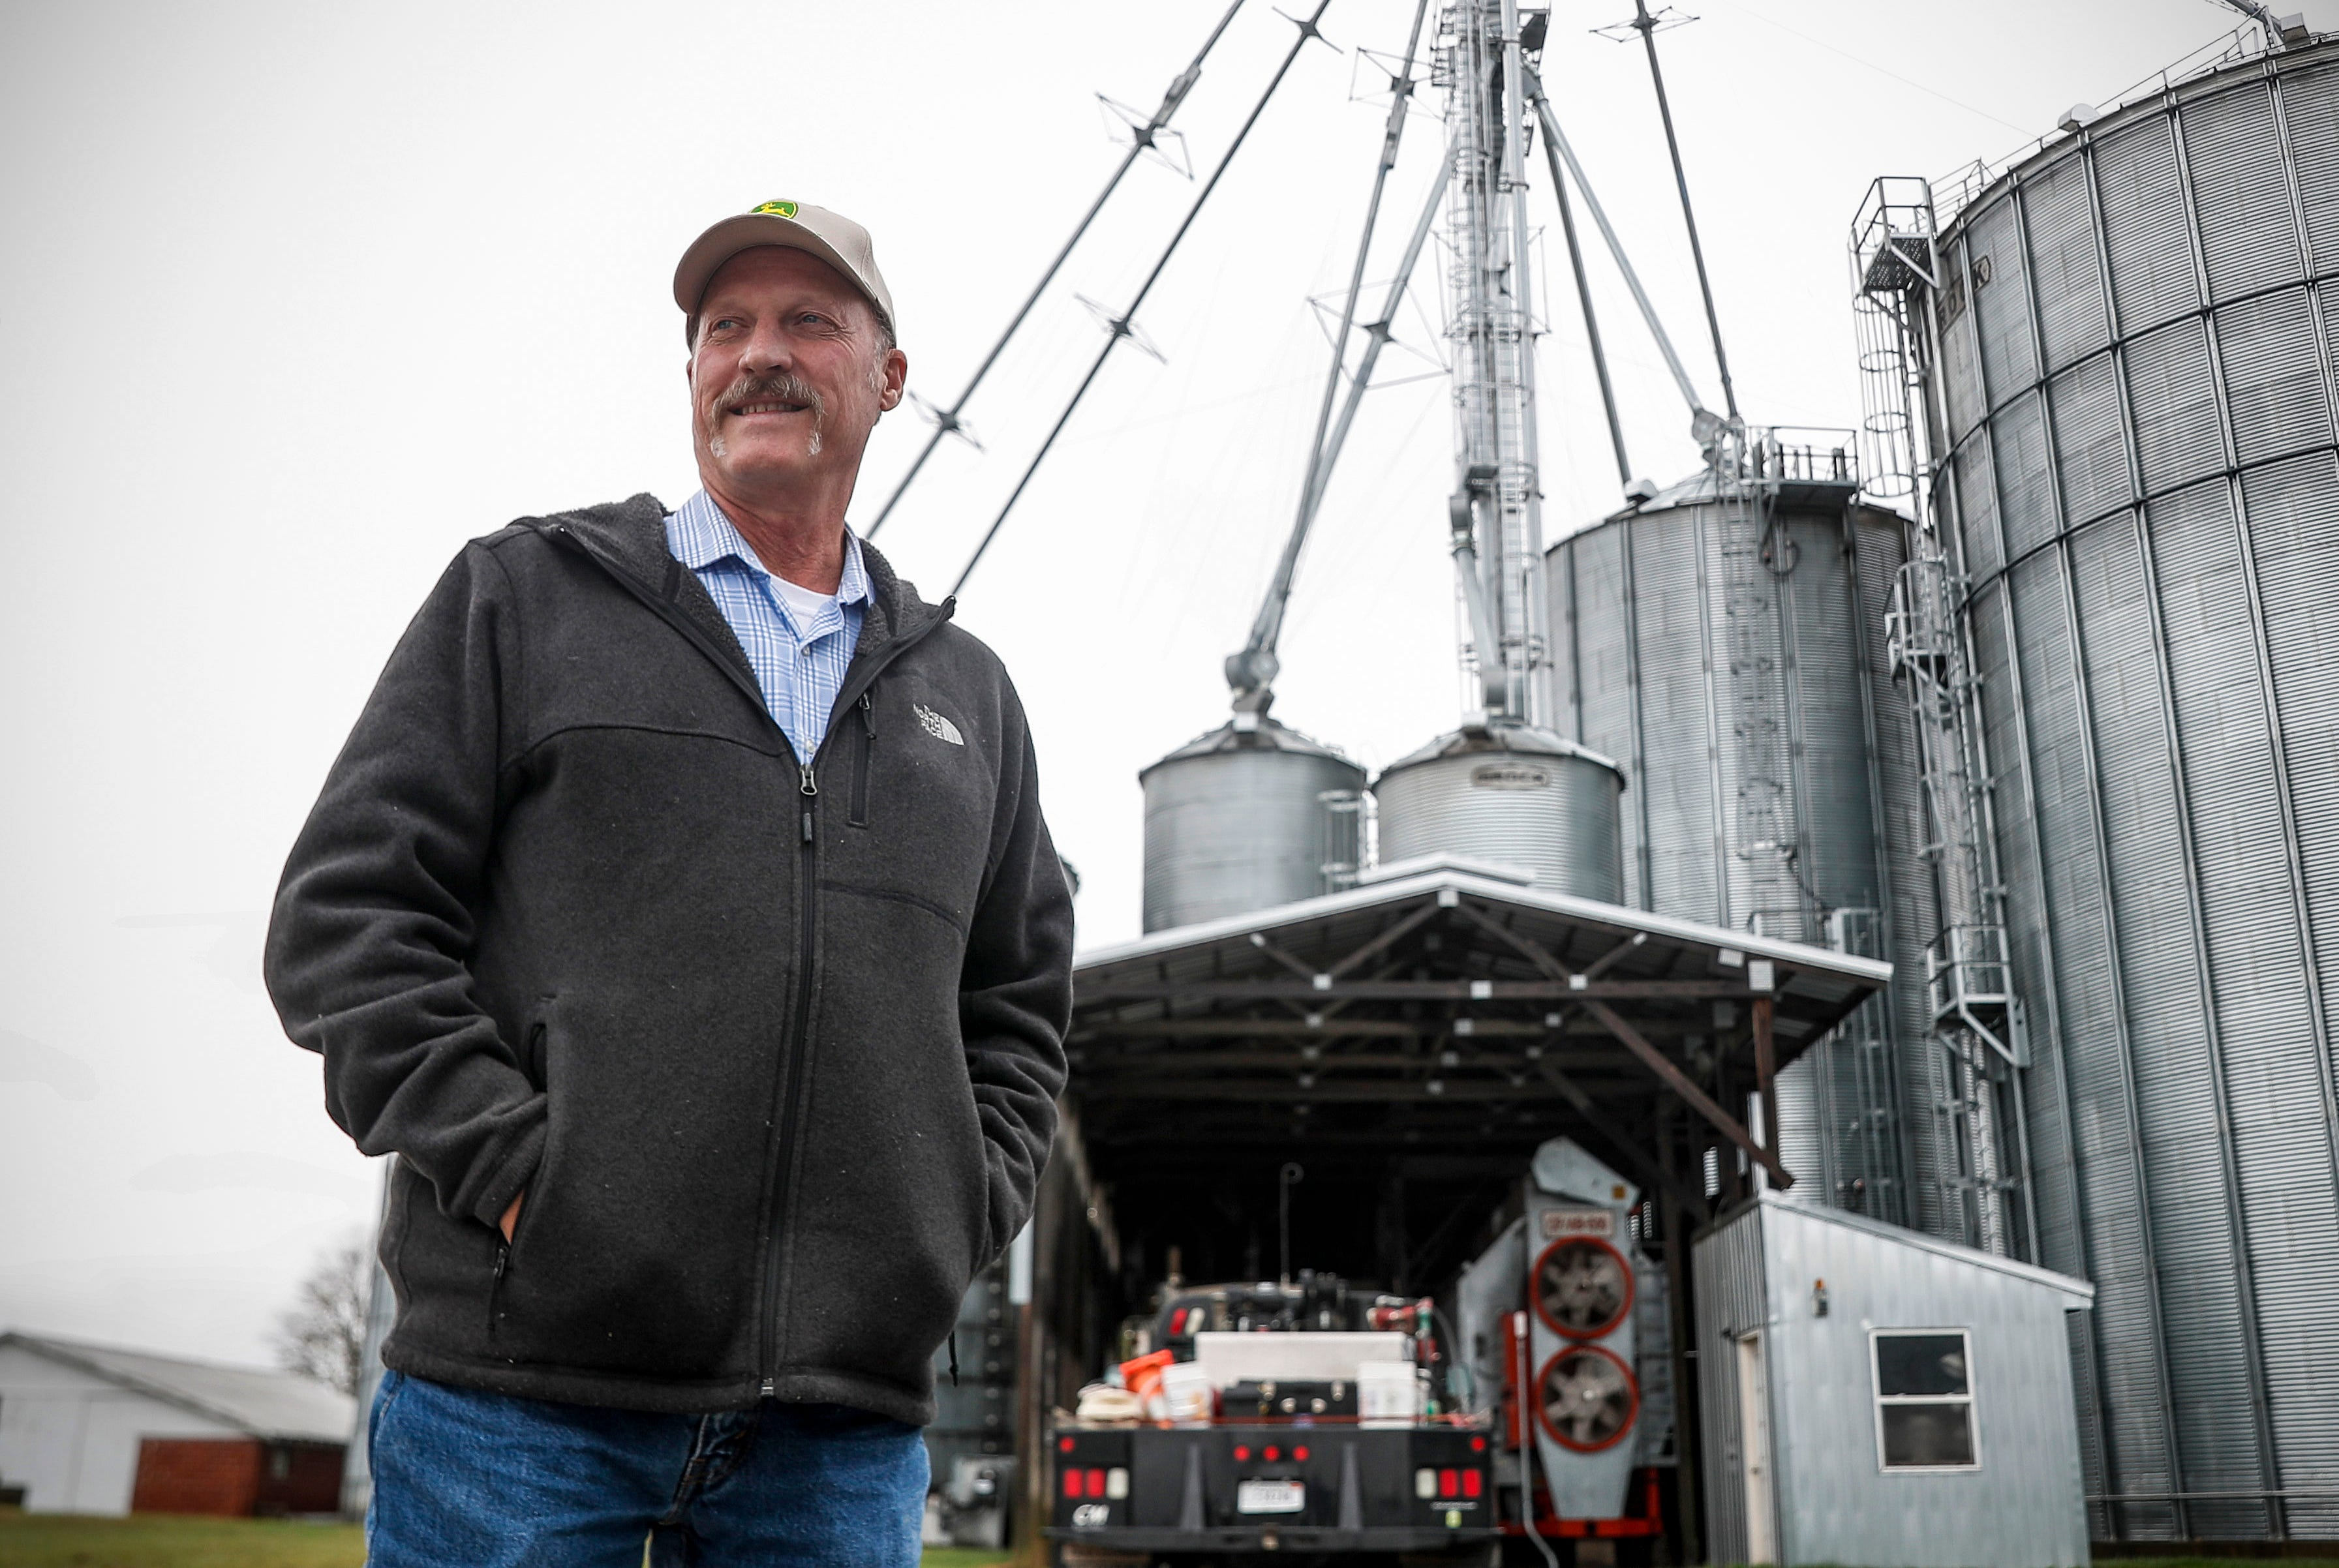 Farmer Brian Thompson stands outside the barns at B&A Thompson Grain Farm in Seymour, Ind., Thursday, October 29, 2020.